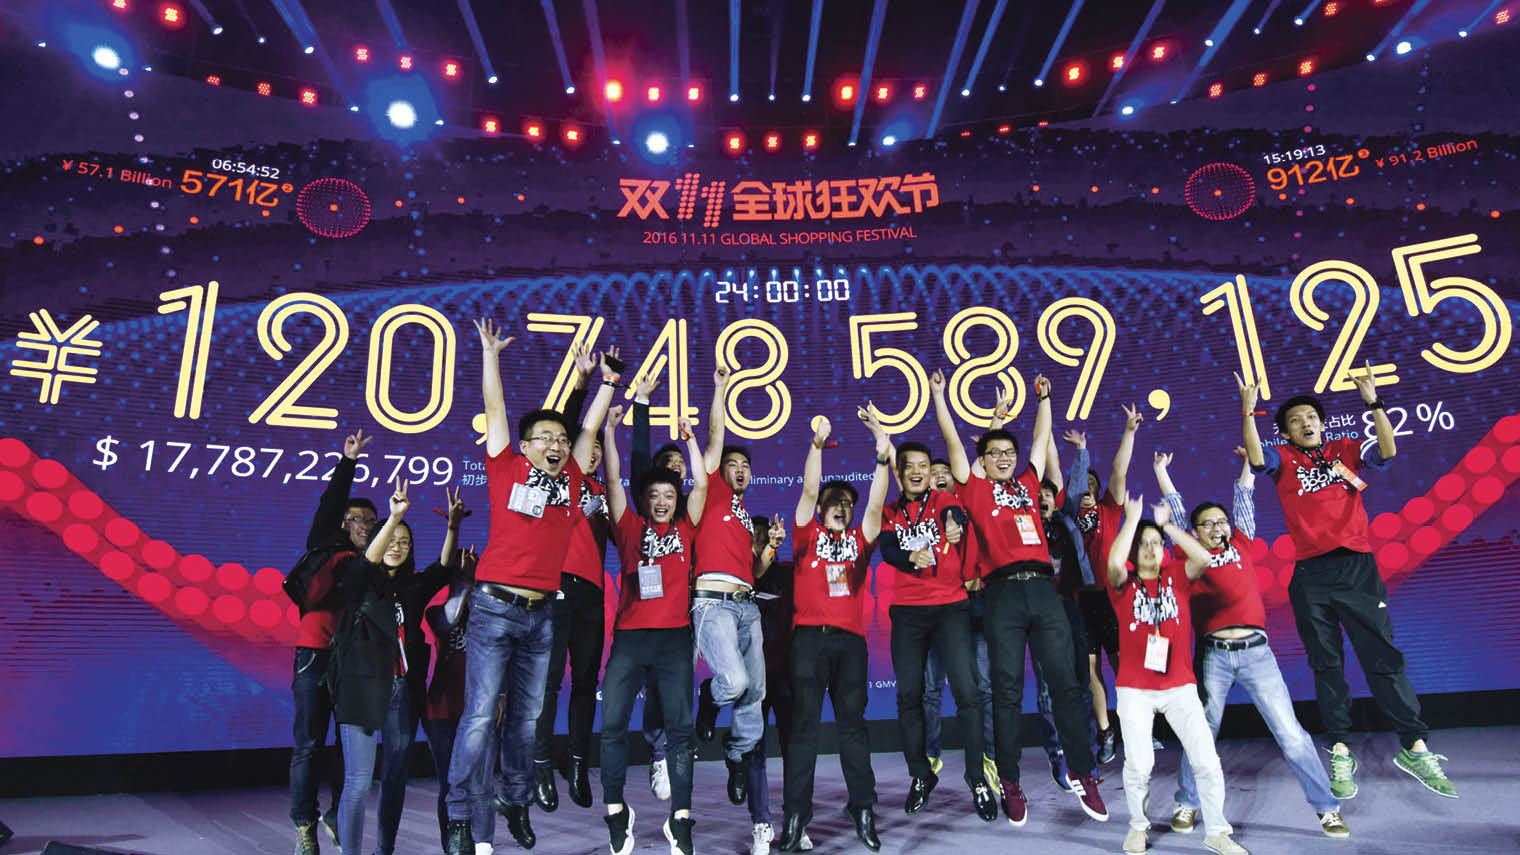 Alibaba celebrates its recordbreaking Singles' Day discount campaign in November, which generated sales worth 120.7 billion Chinese yuan or $17 billion